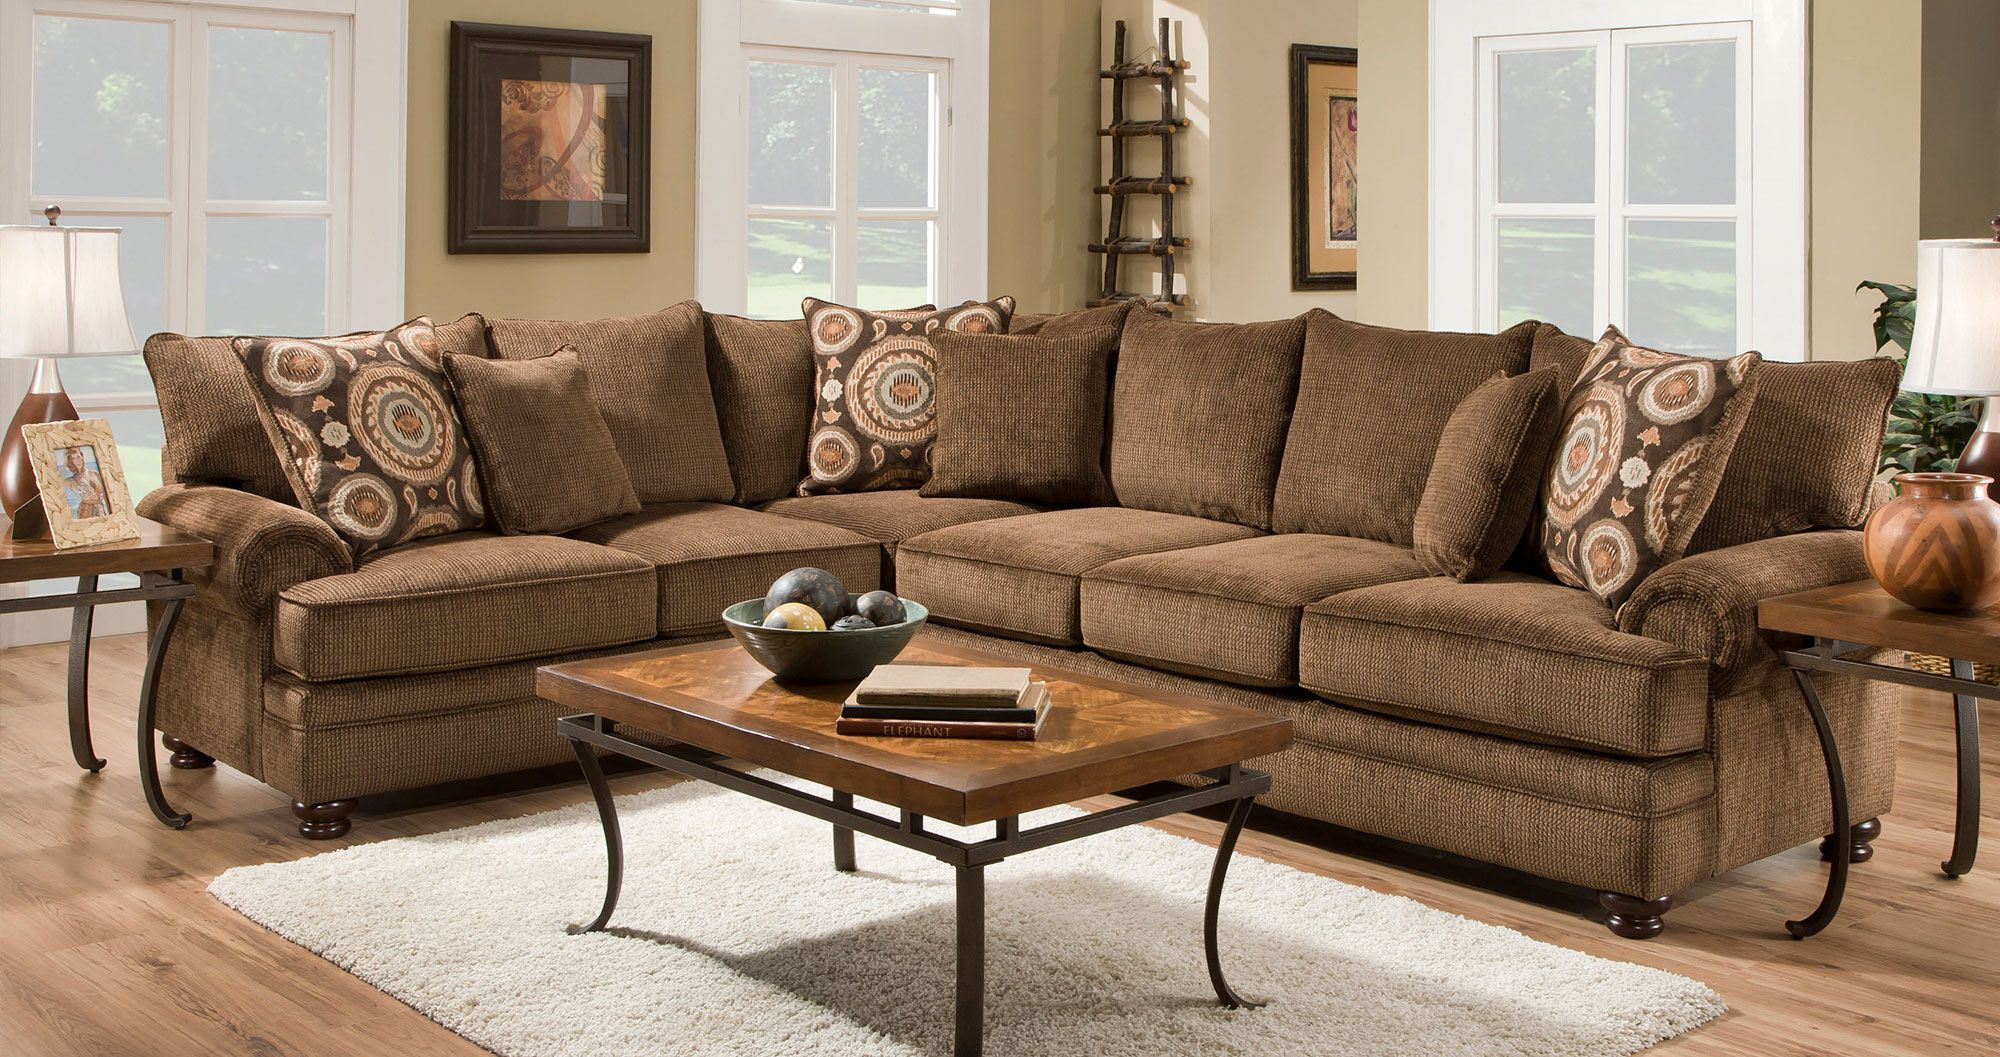 Chelsea Home Furniture Ria Sectional Sofa   Create A Center For  Entertainment With The Chelsea Home Furniture Ria Sectional Sofa .